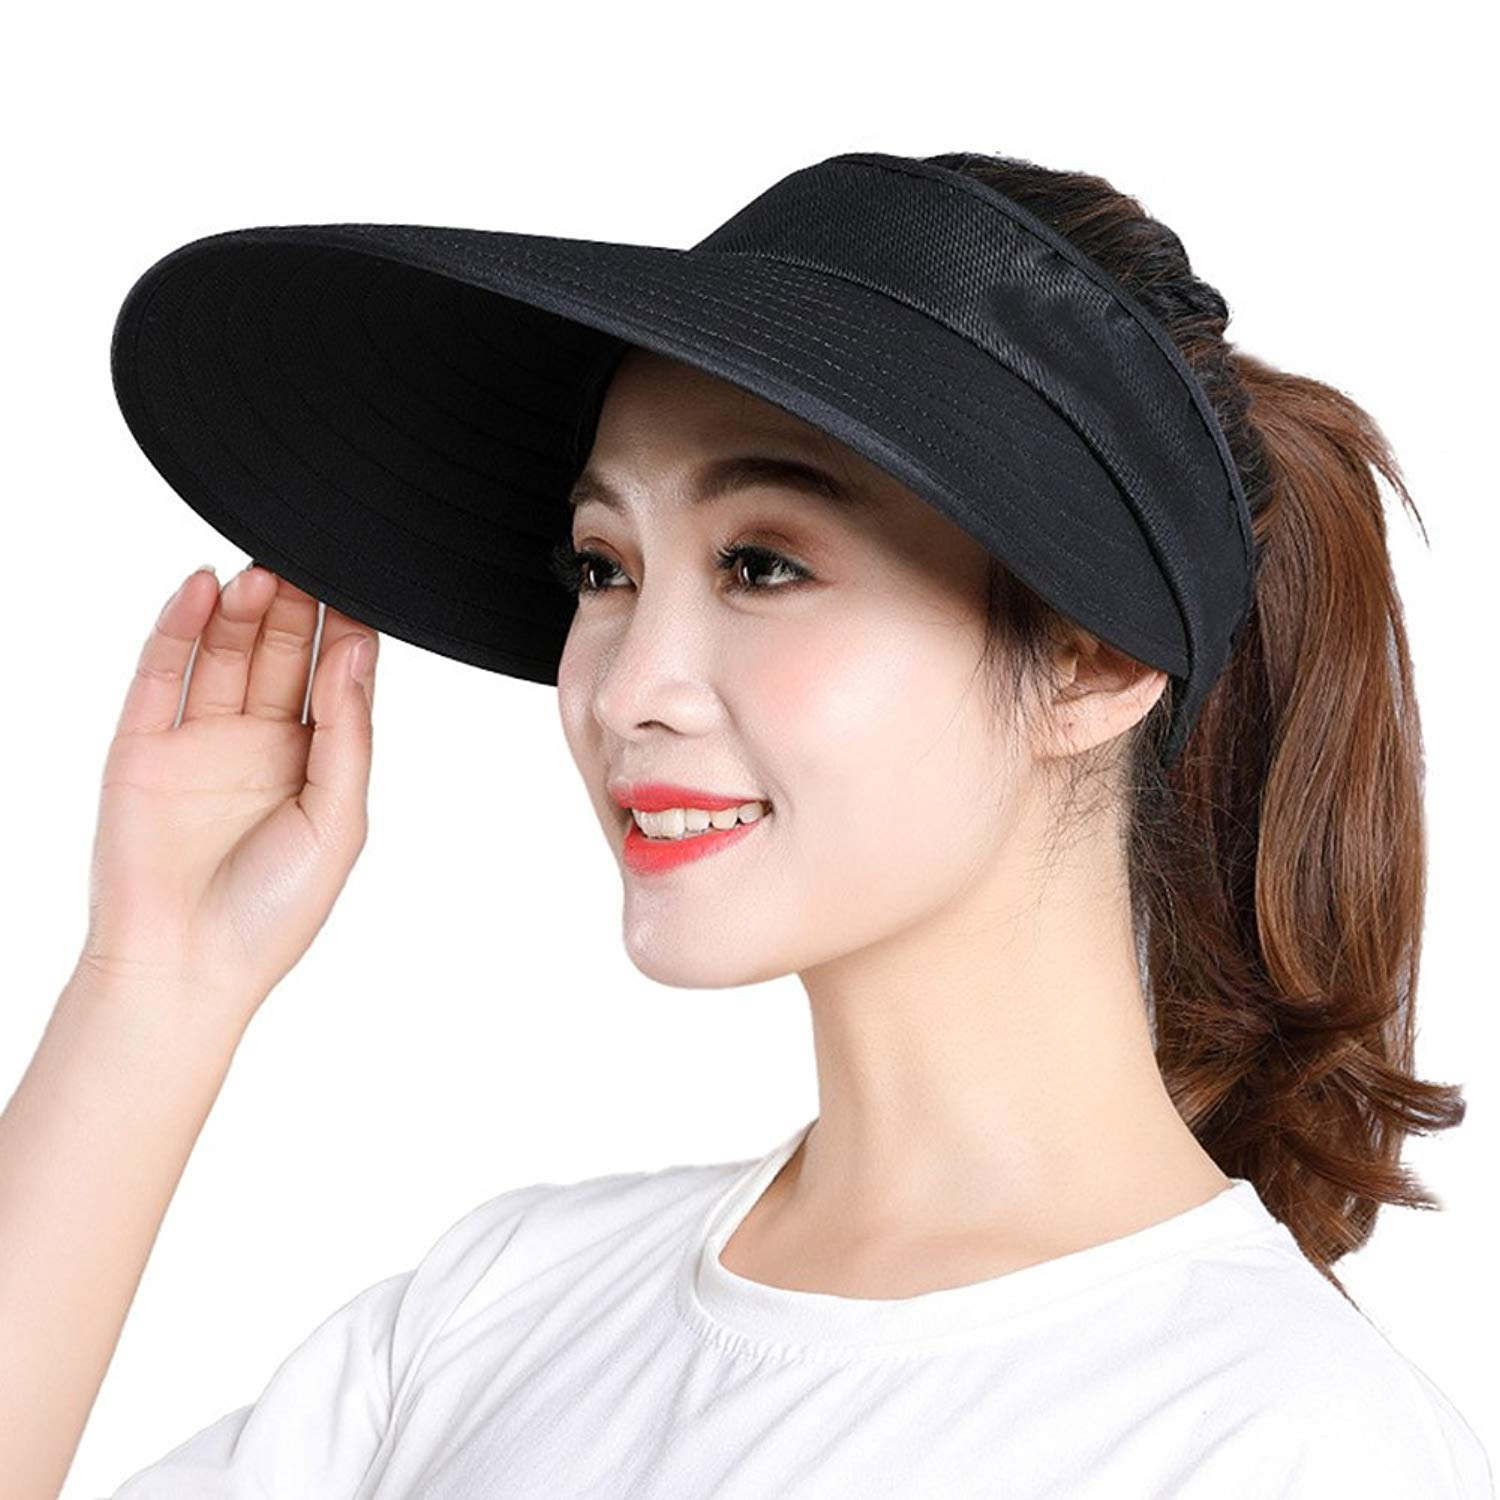 f6ceec16004 Get Quotations · New Women s Sunblock Hats for Spring and Summer Travel Sea  Hats Women s Beach Hat